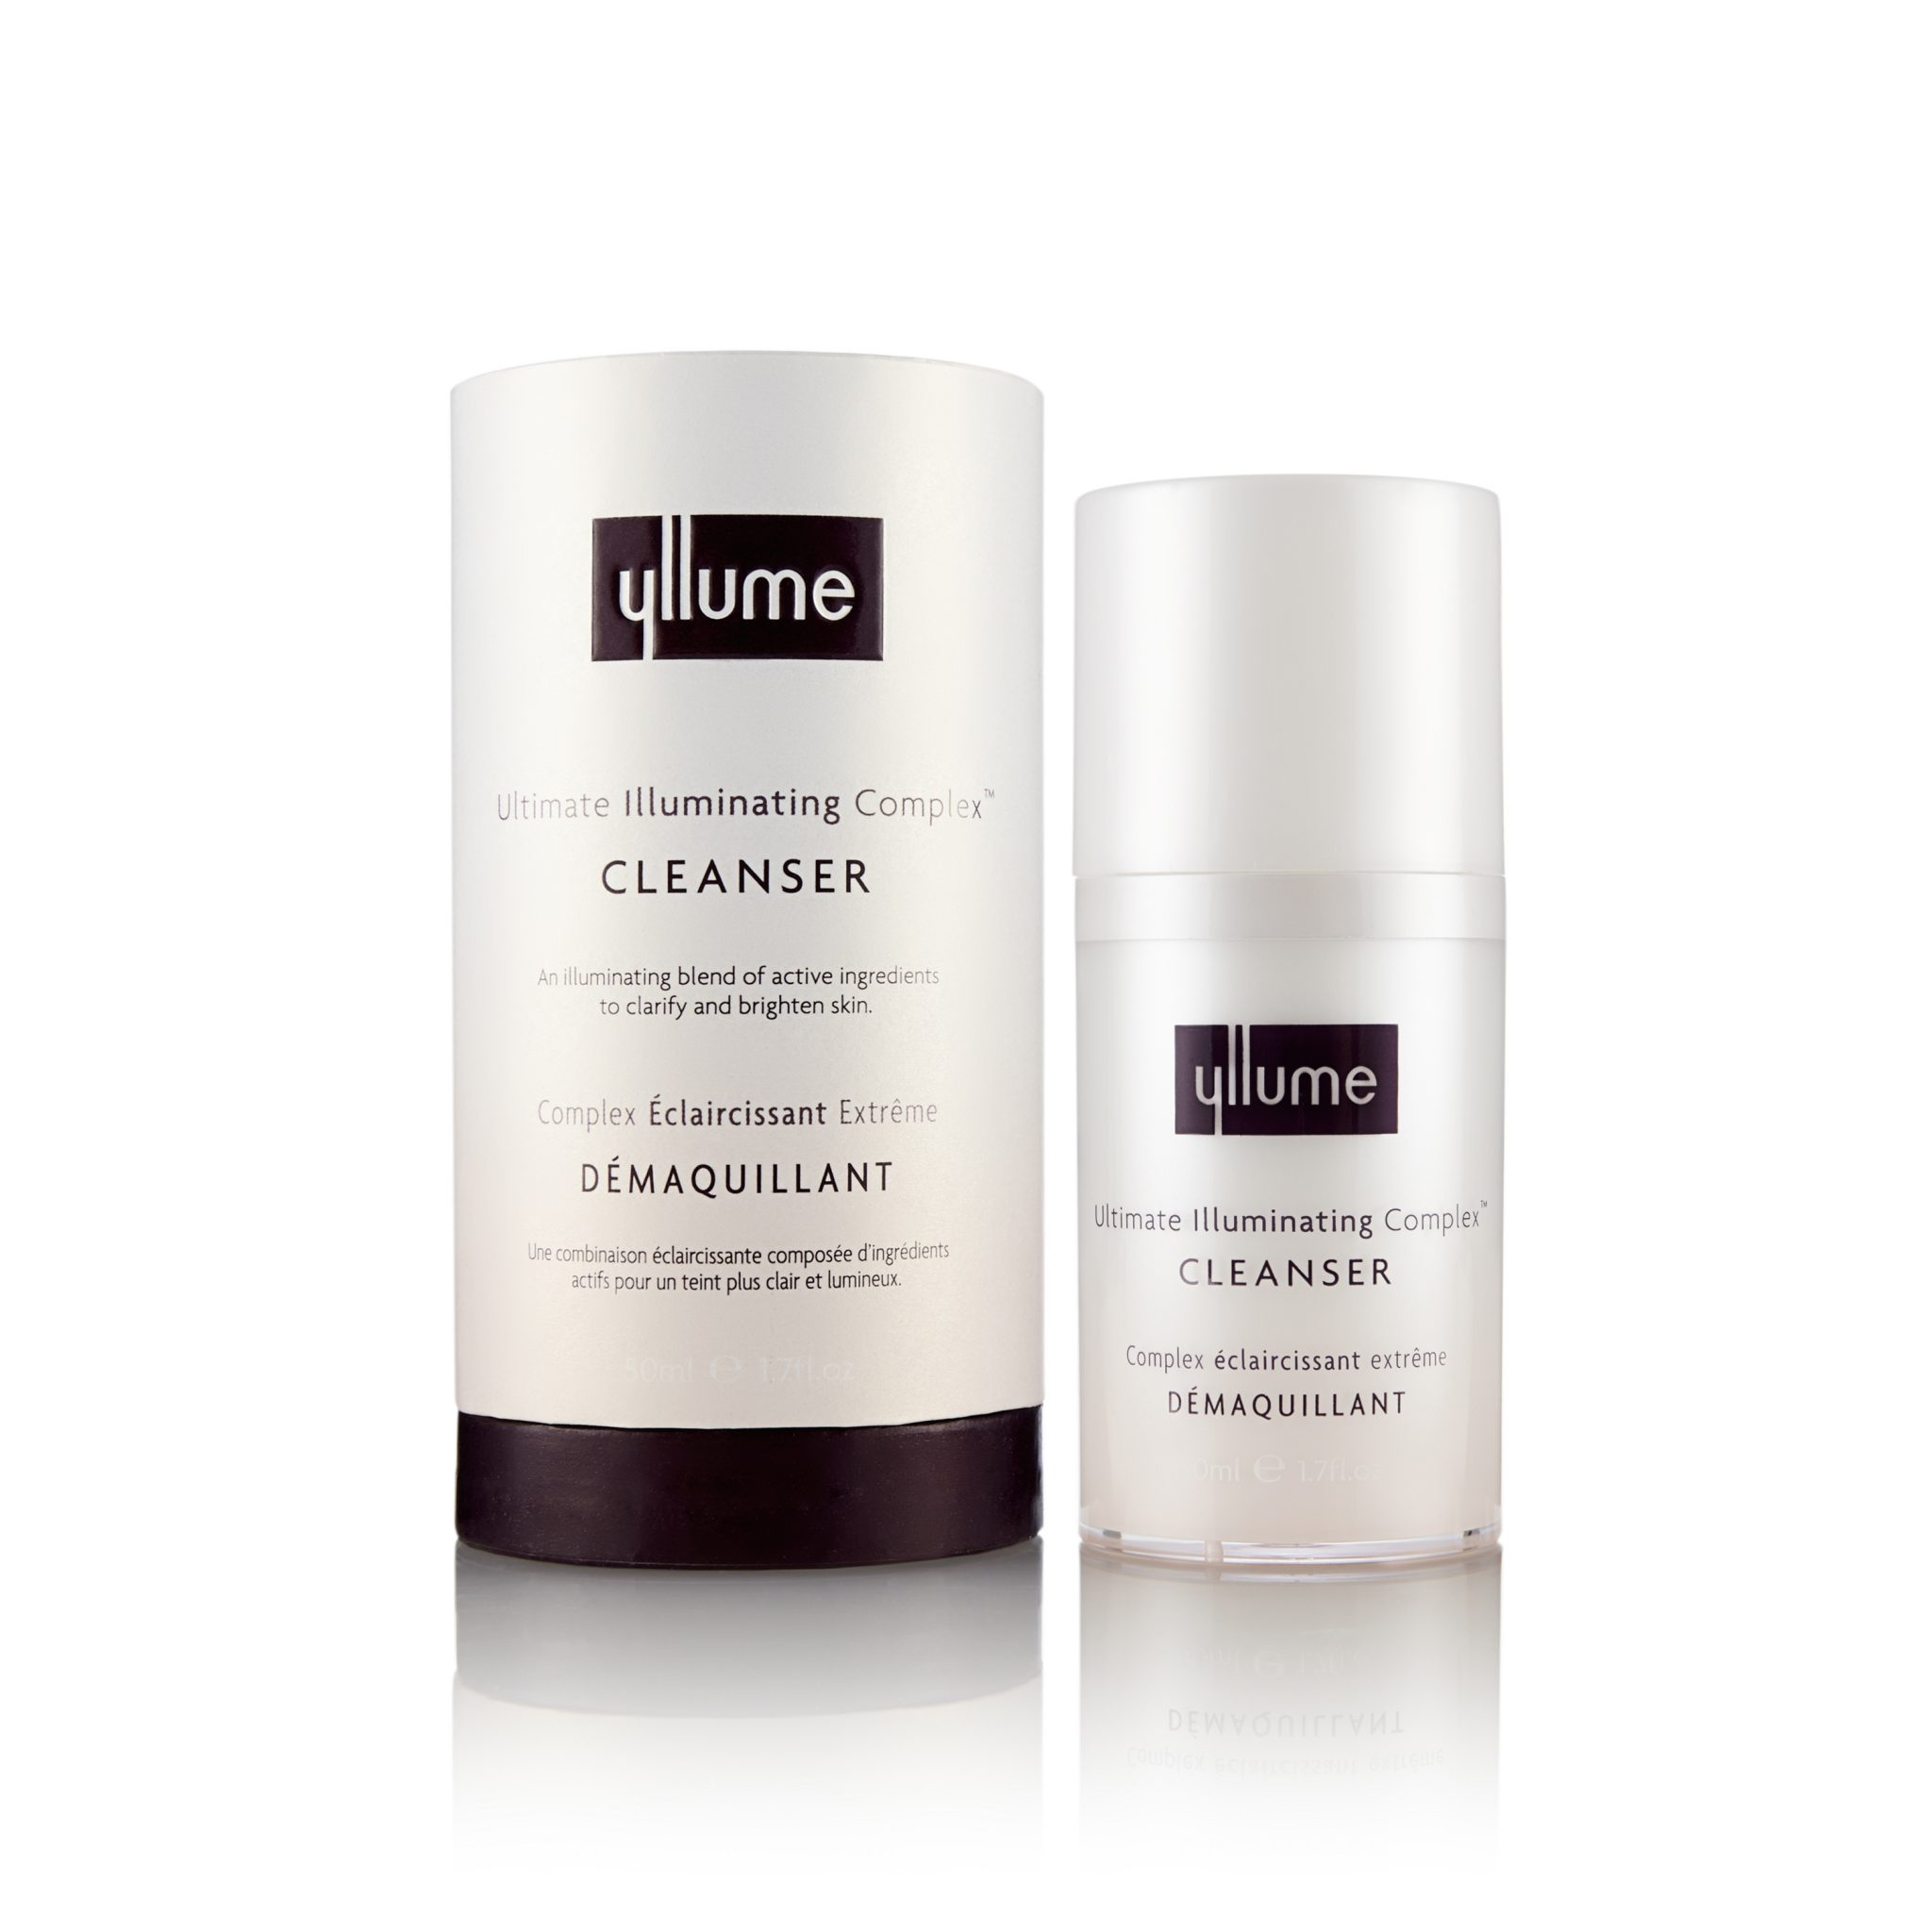 YLLUME_CLEANSER_reference